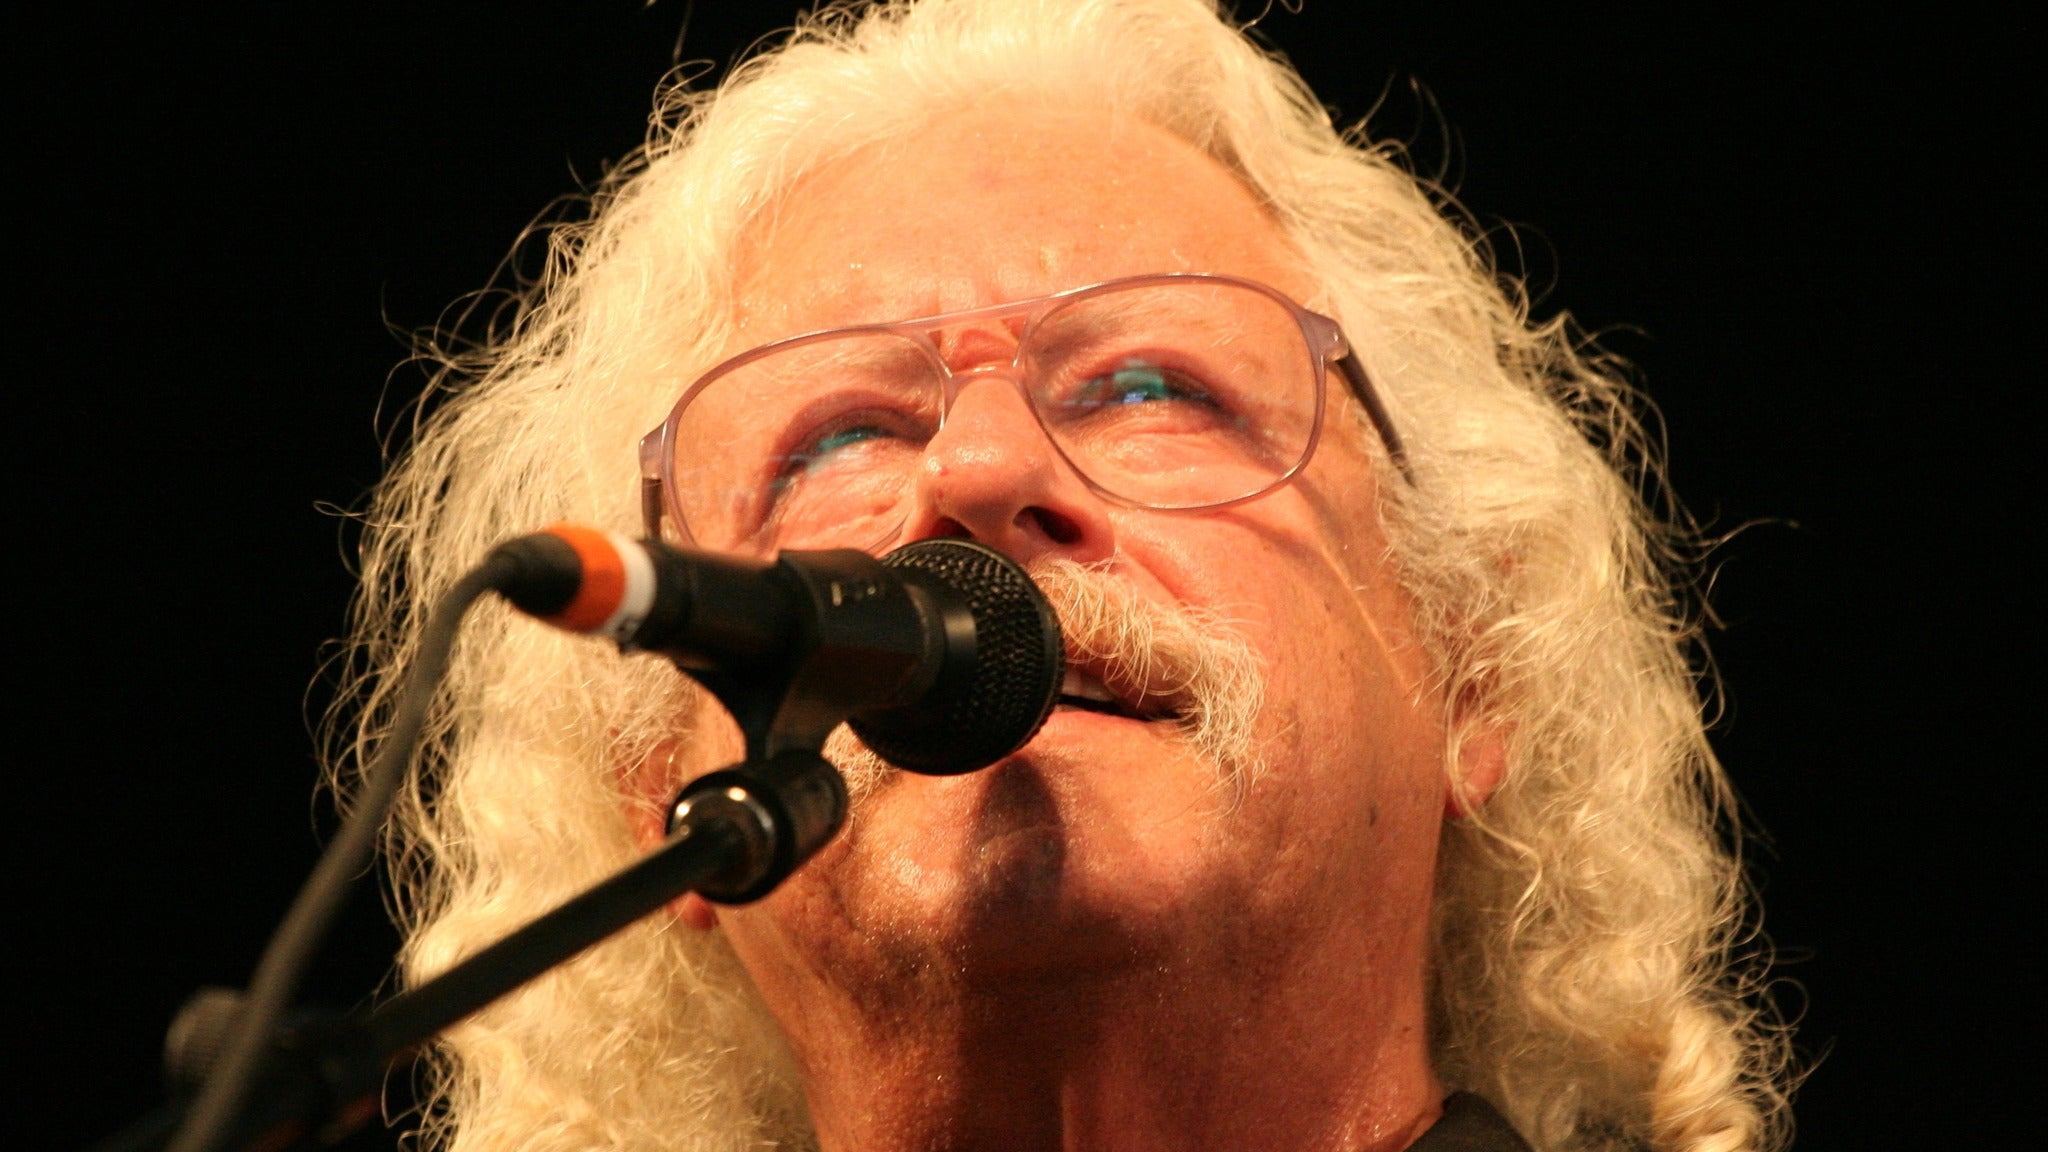 Arlo Guthrie at The Coach House